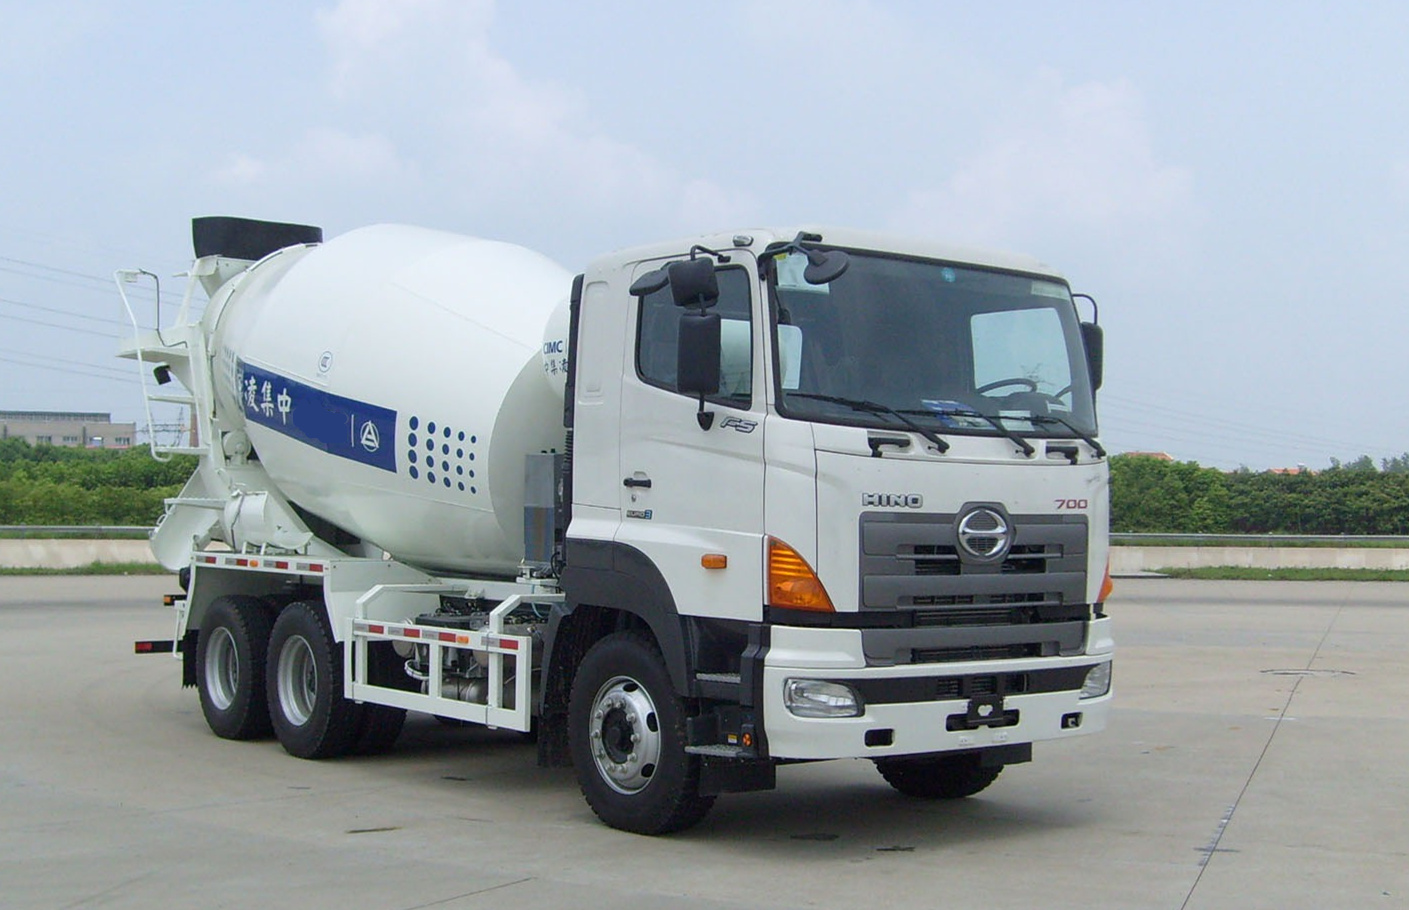 Japan Hino Transit Mixer Truck for sale